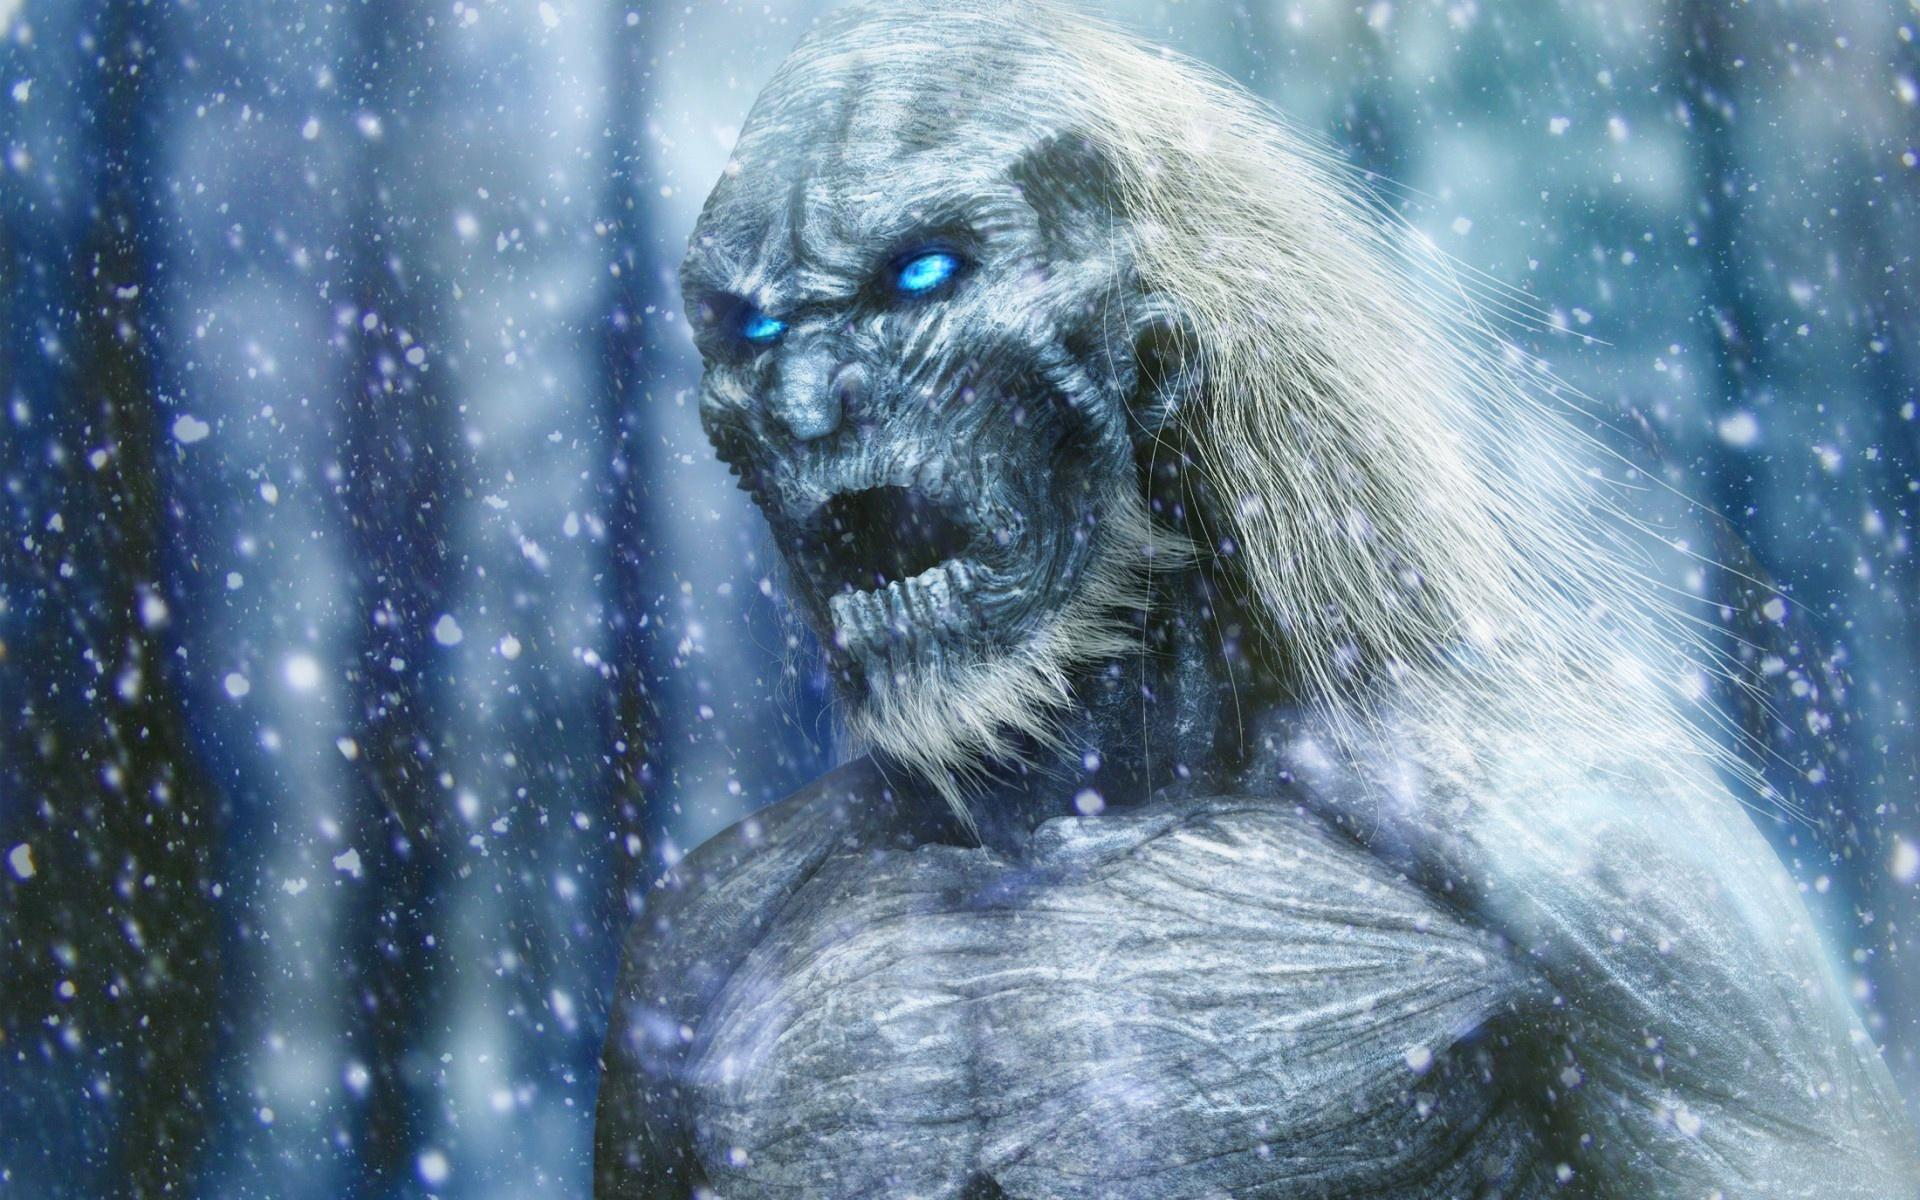 Download game of thrones white walkers wallpaper HD wallpaper 1920x1200